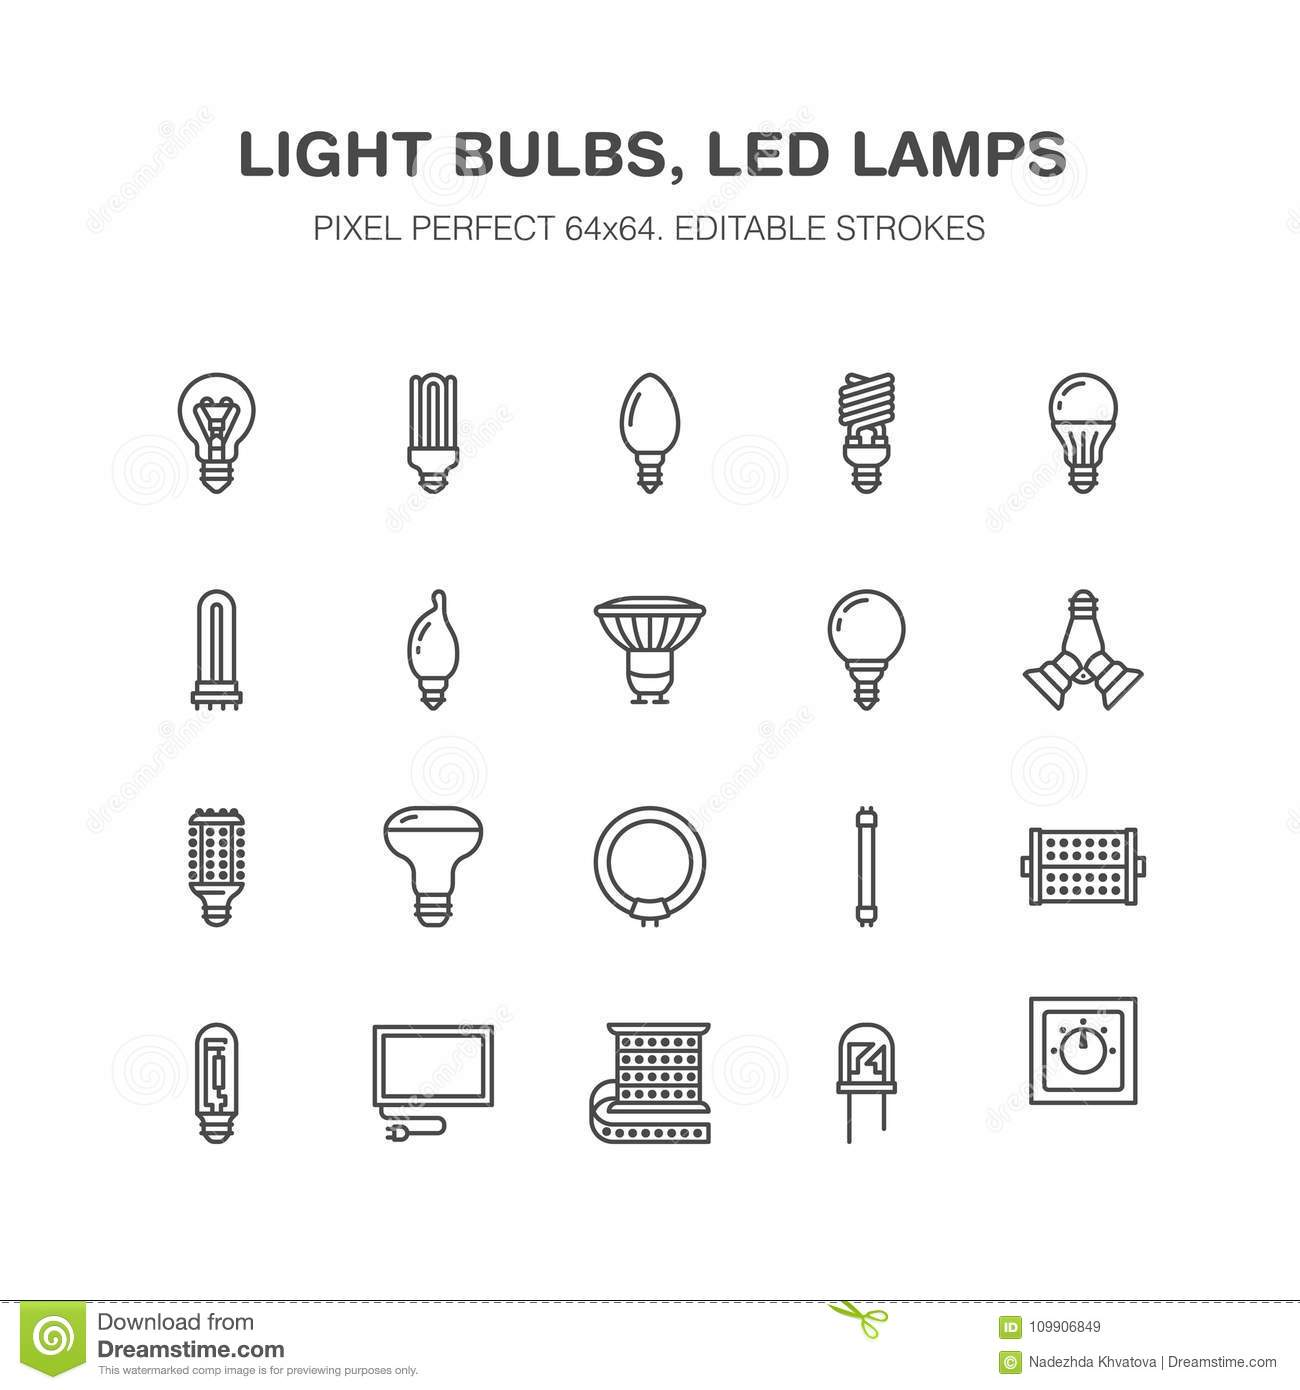 Diode lamp: types and description 44